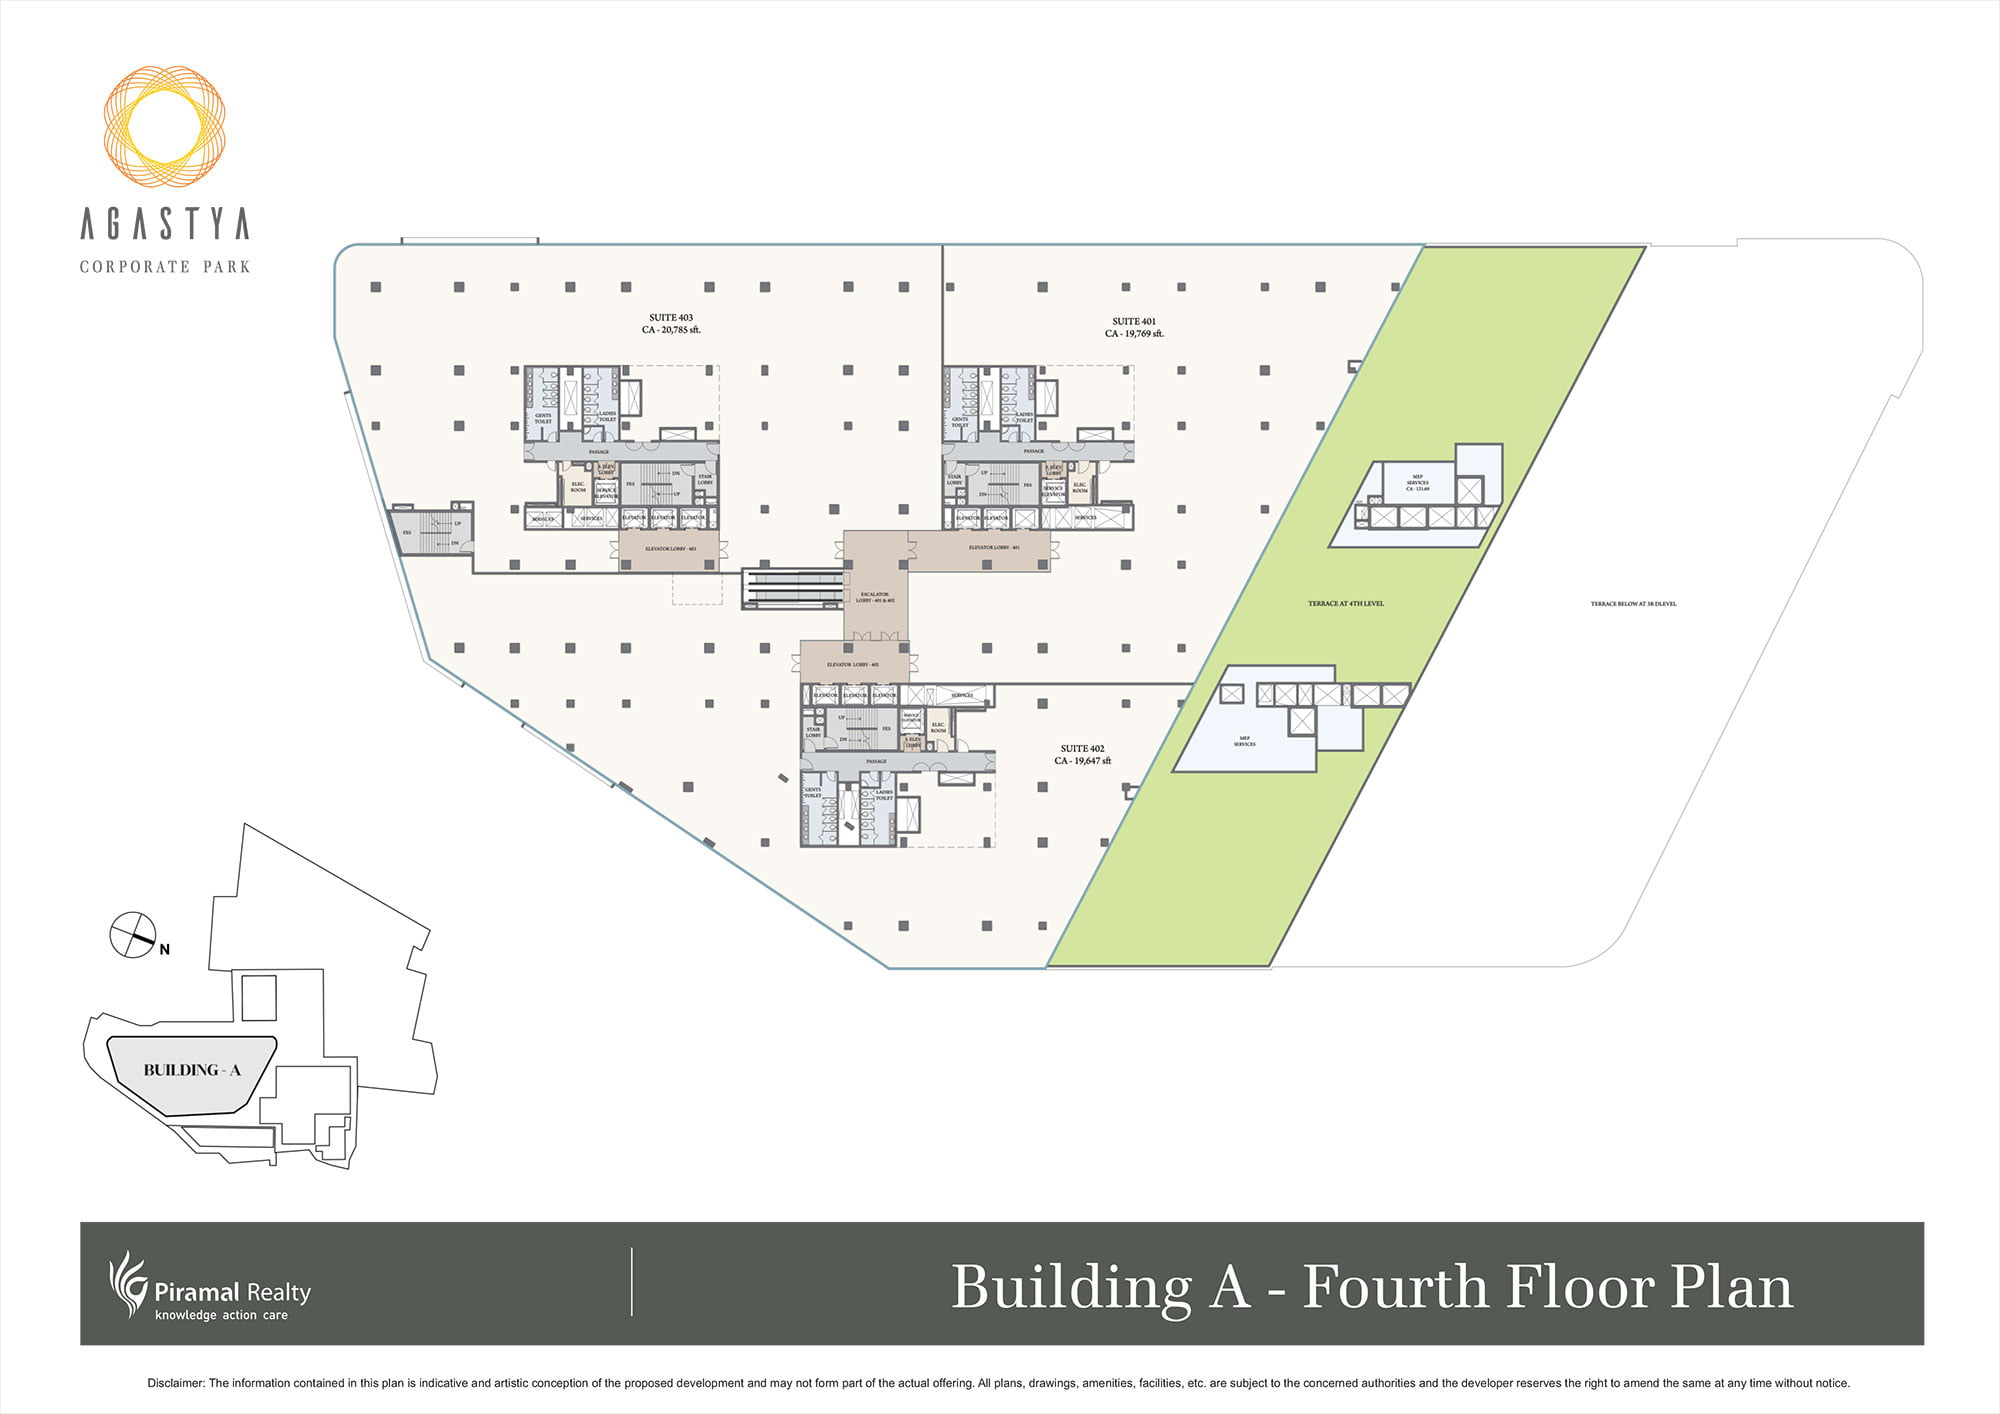 piramalagastya floor plans 5-1